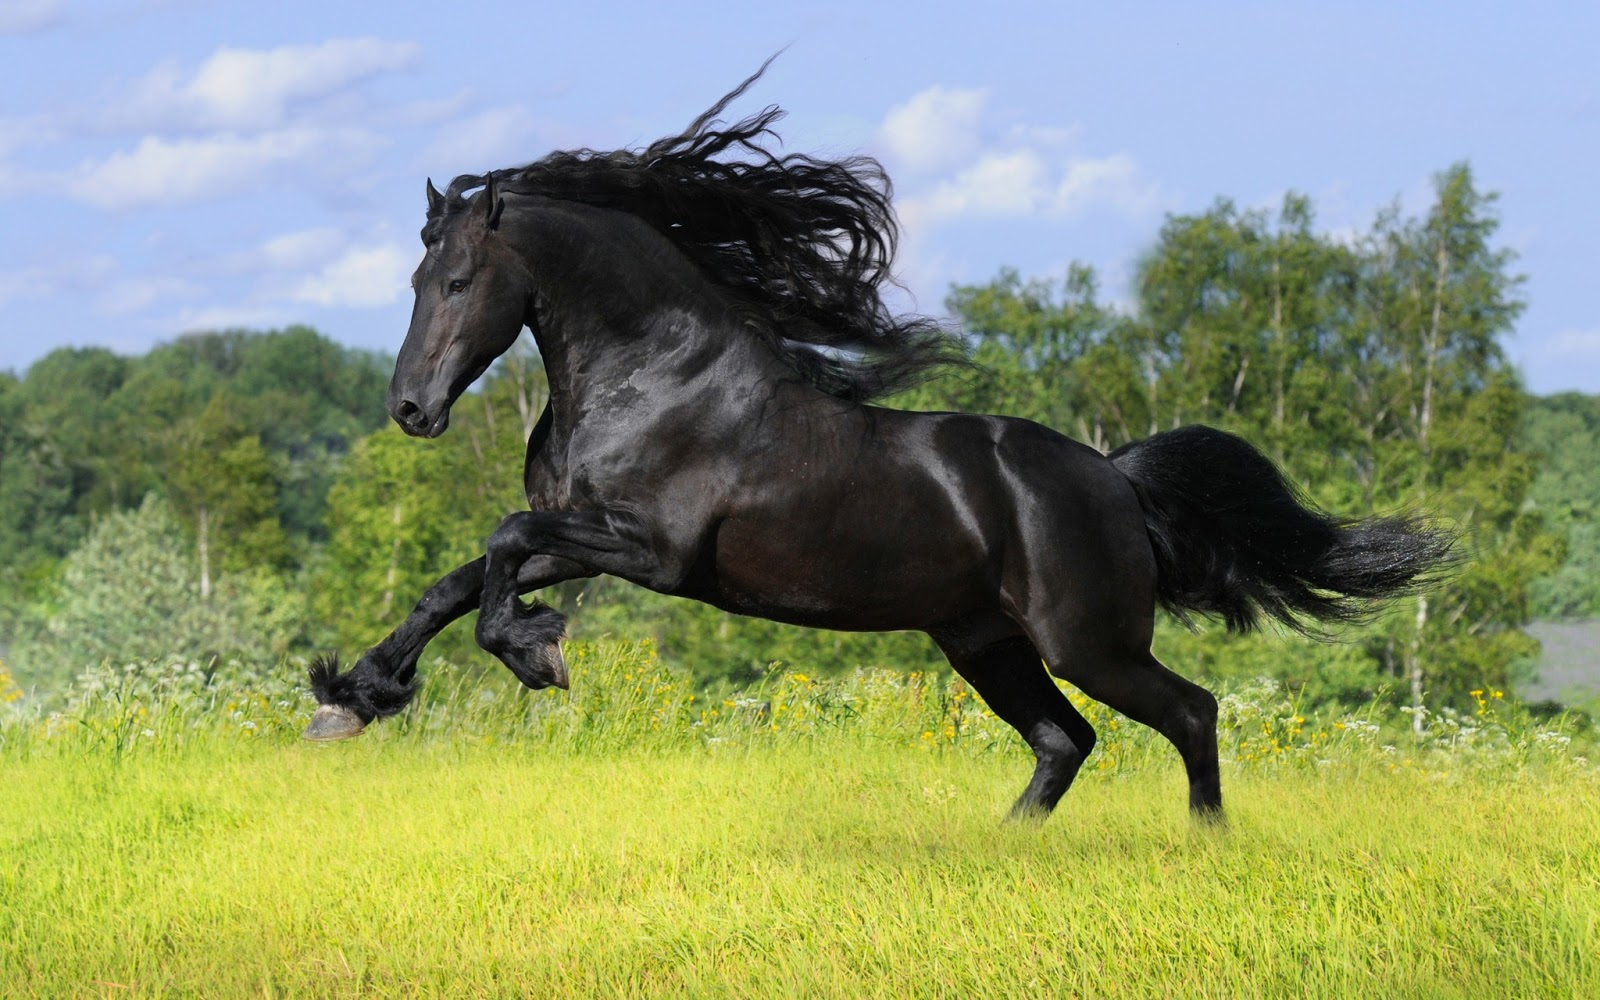 Wild horses hd wallpapers check out the cool latest wild horses images